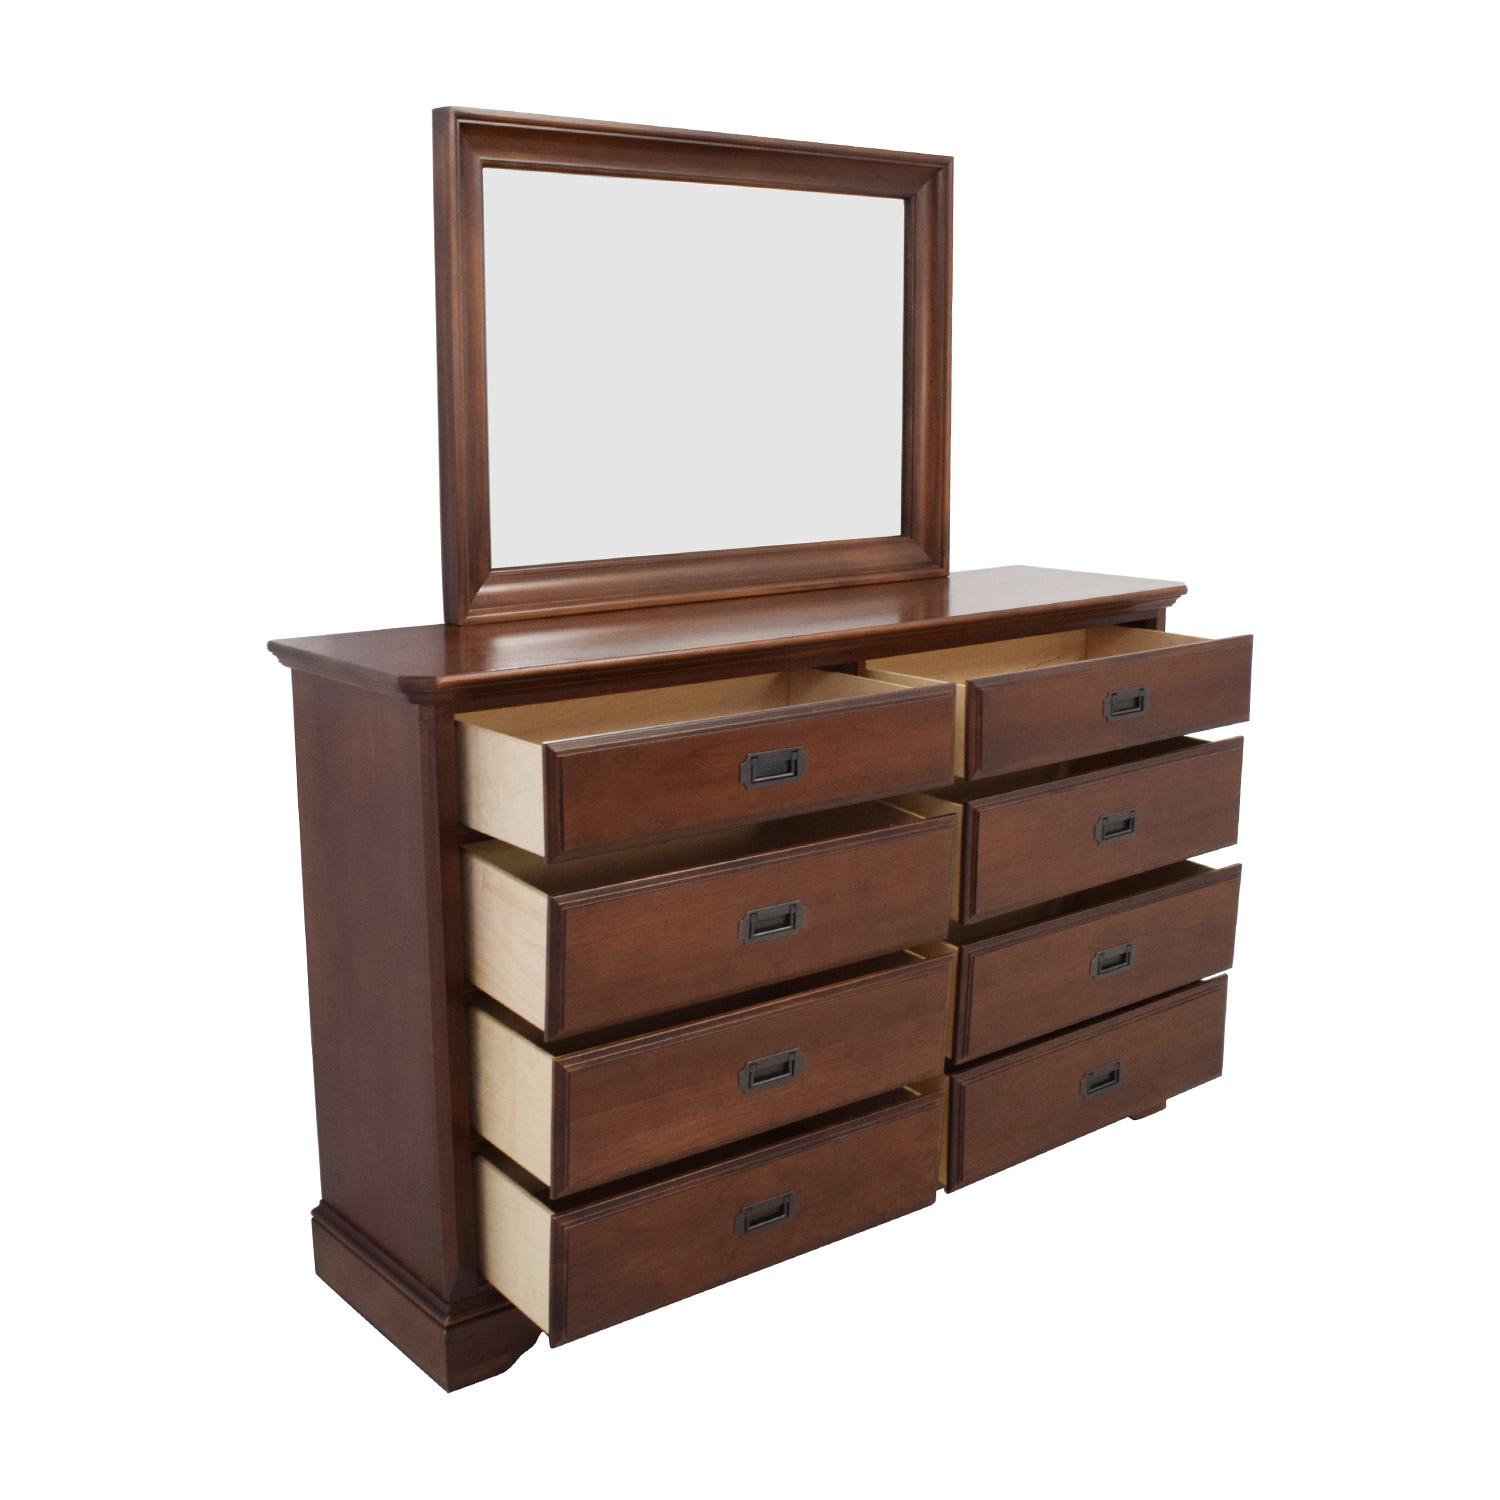 Vaughan Bassett Hardwood Dresser with Mirror coupon